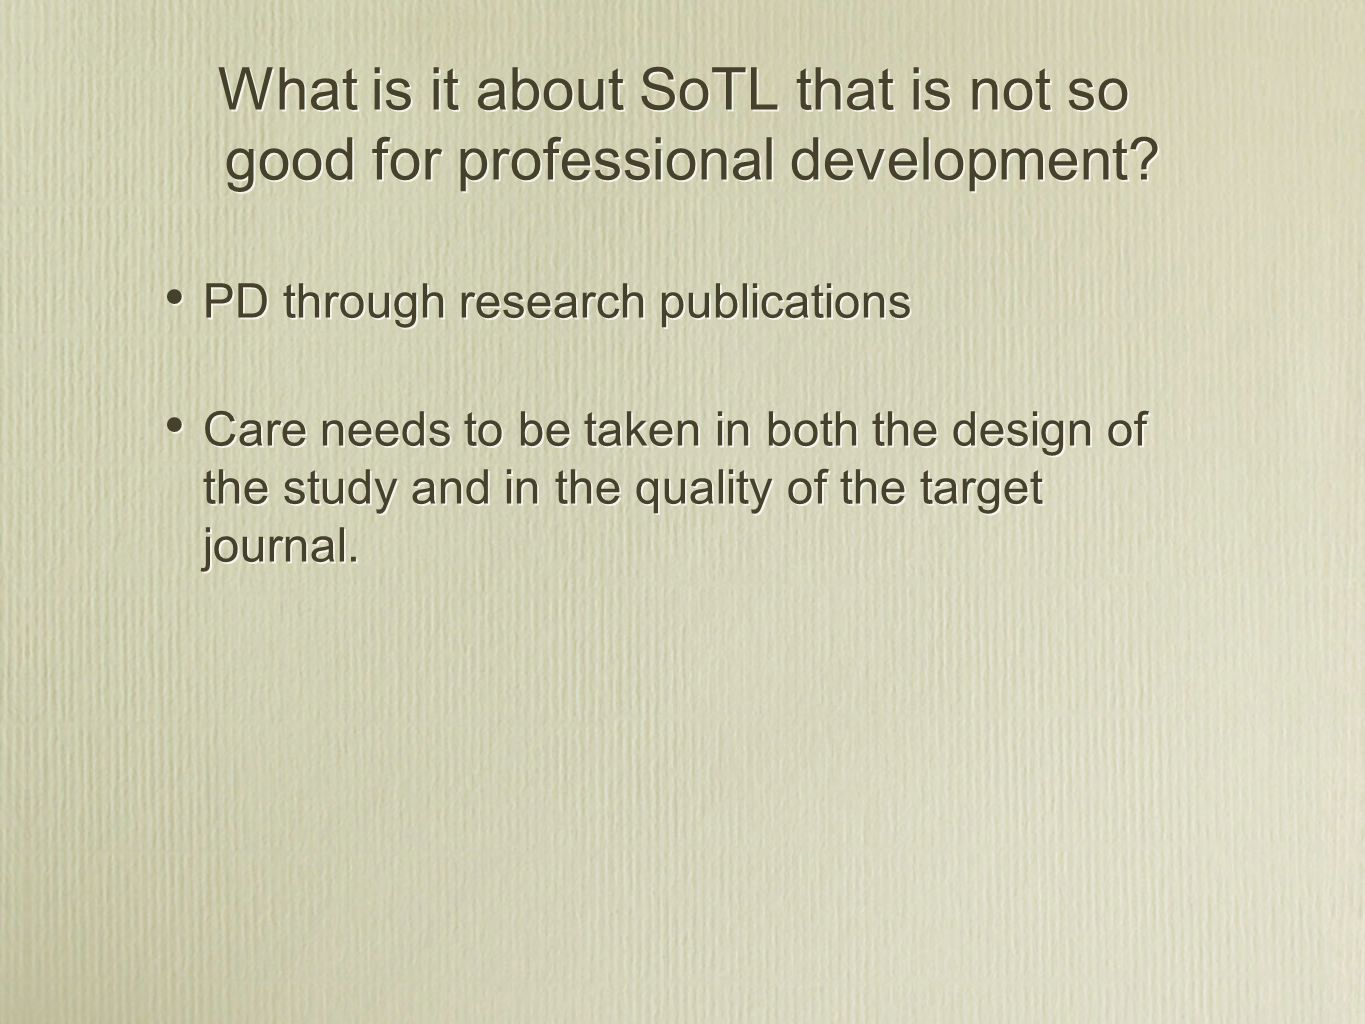 What is it about SoTL that is not so good for professional development